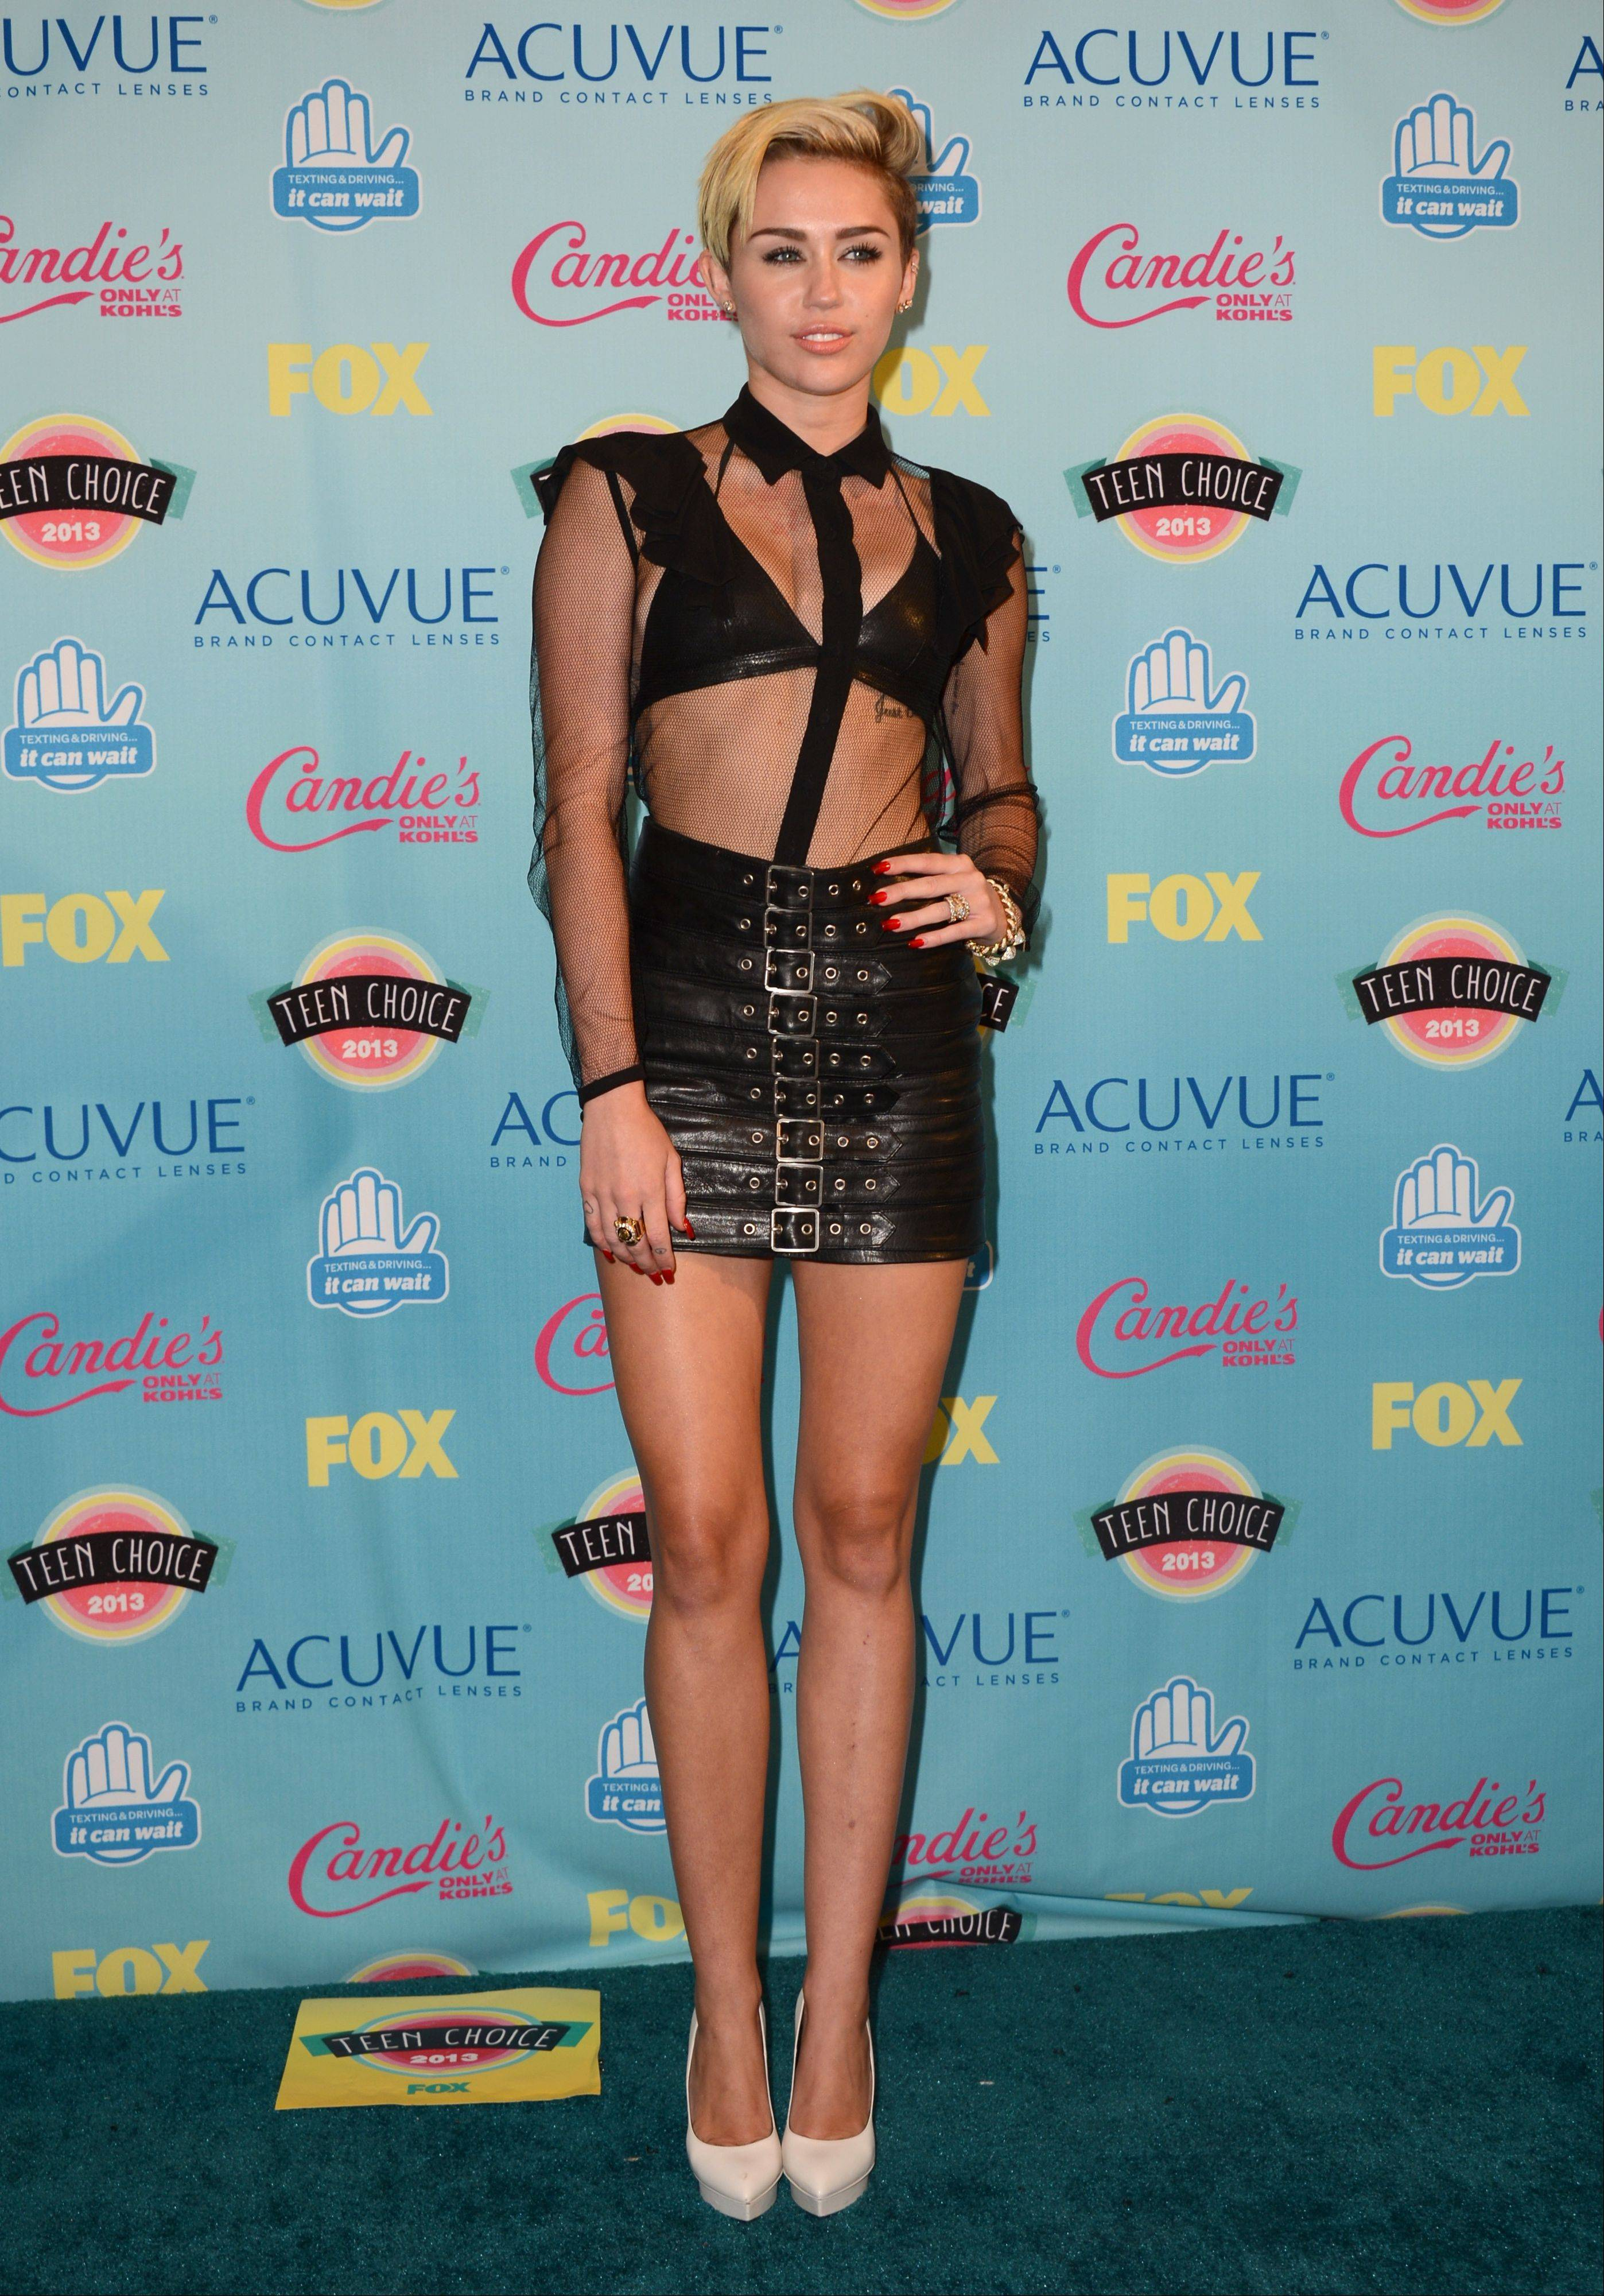 Miley Cyrus poses backstage at the Teen Choice Awards at the Gibson Amphitheater on Sunday, Aug. 11, 2013, in Los Angeles.